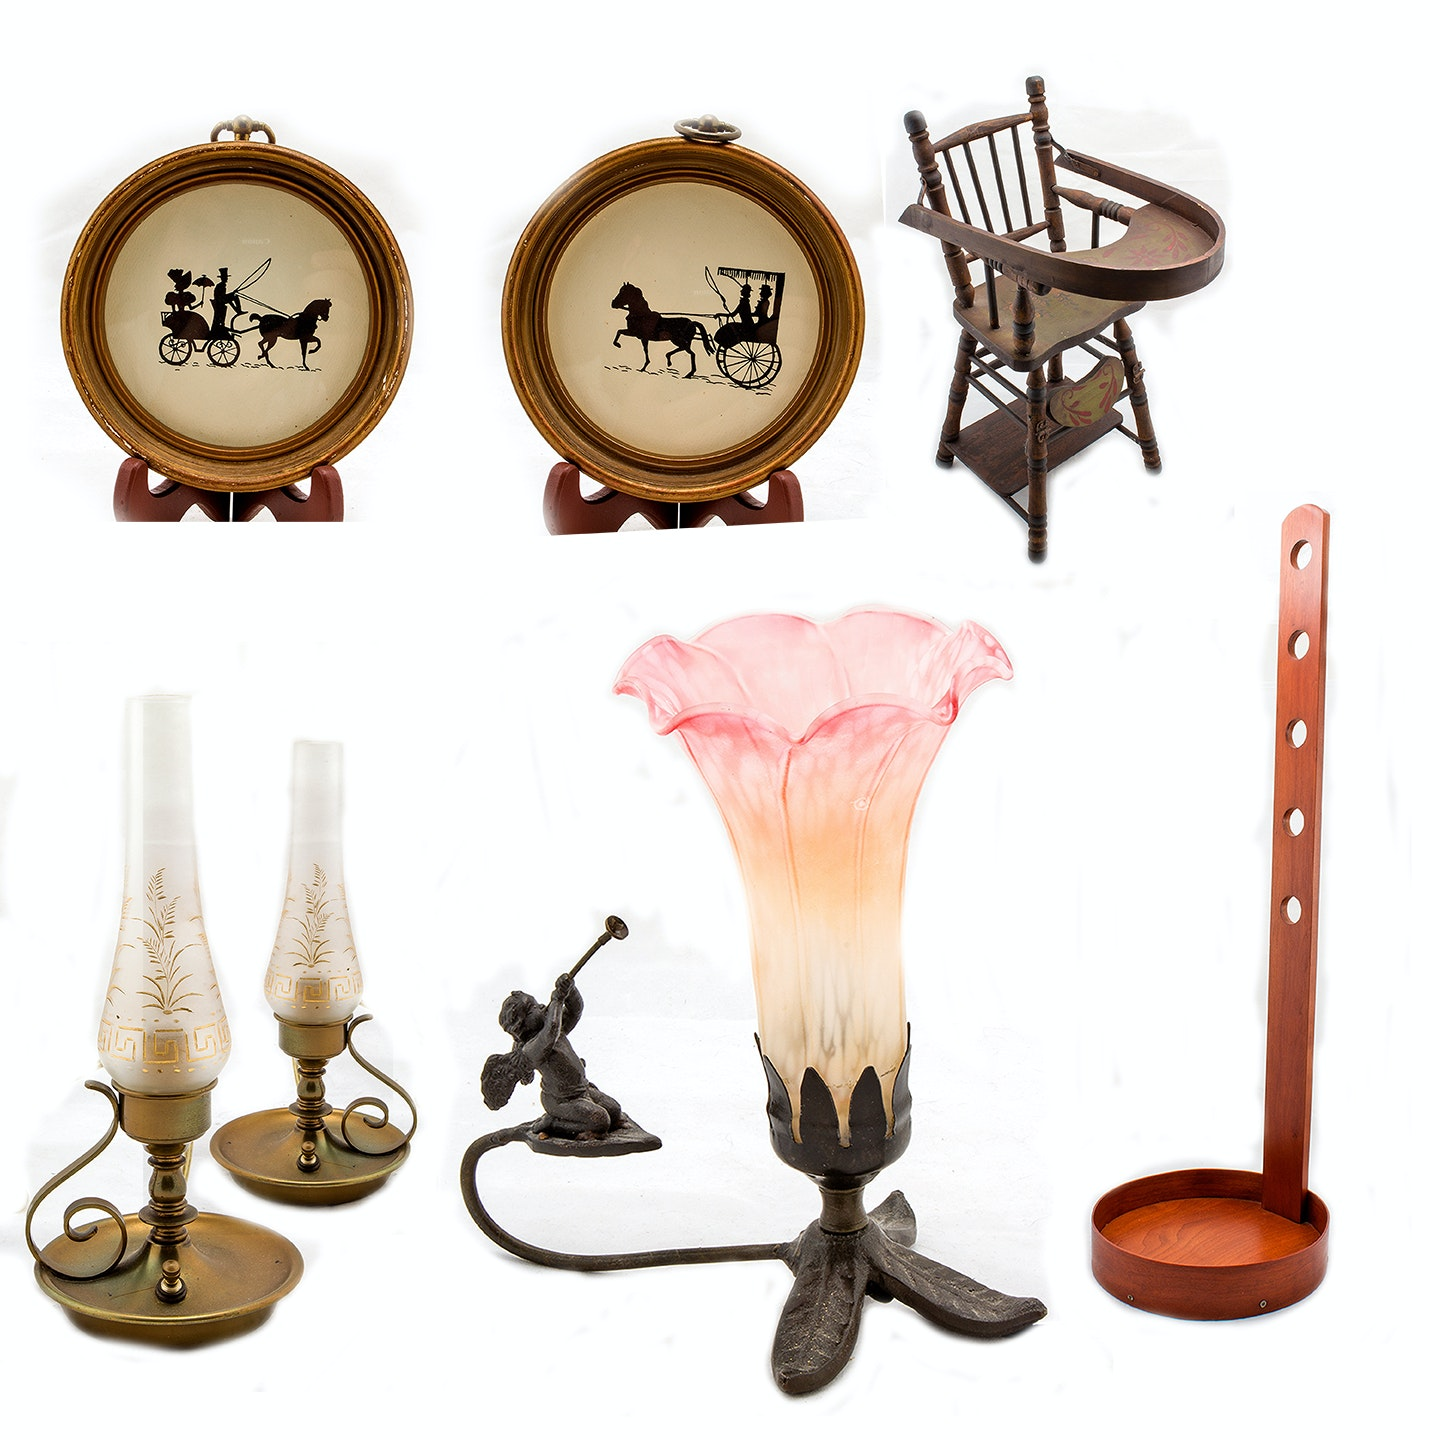 Vintage Table Lamps, High Chair and Decor